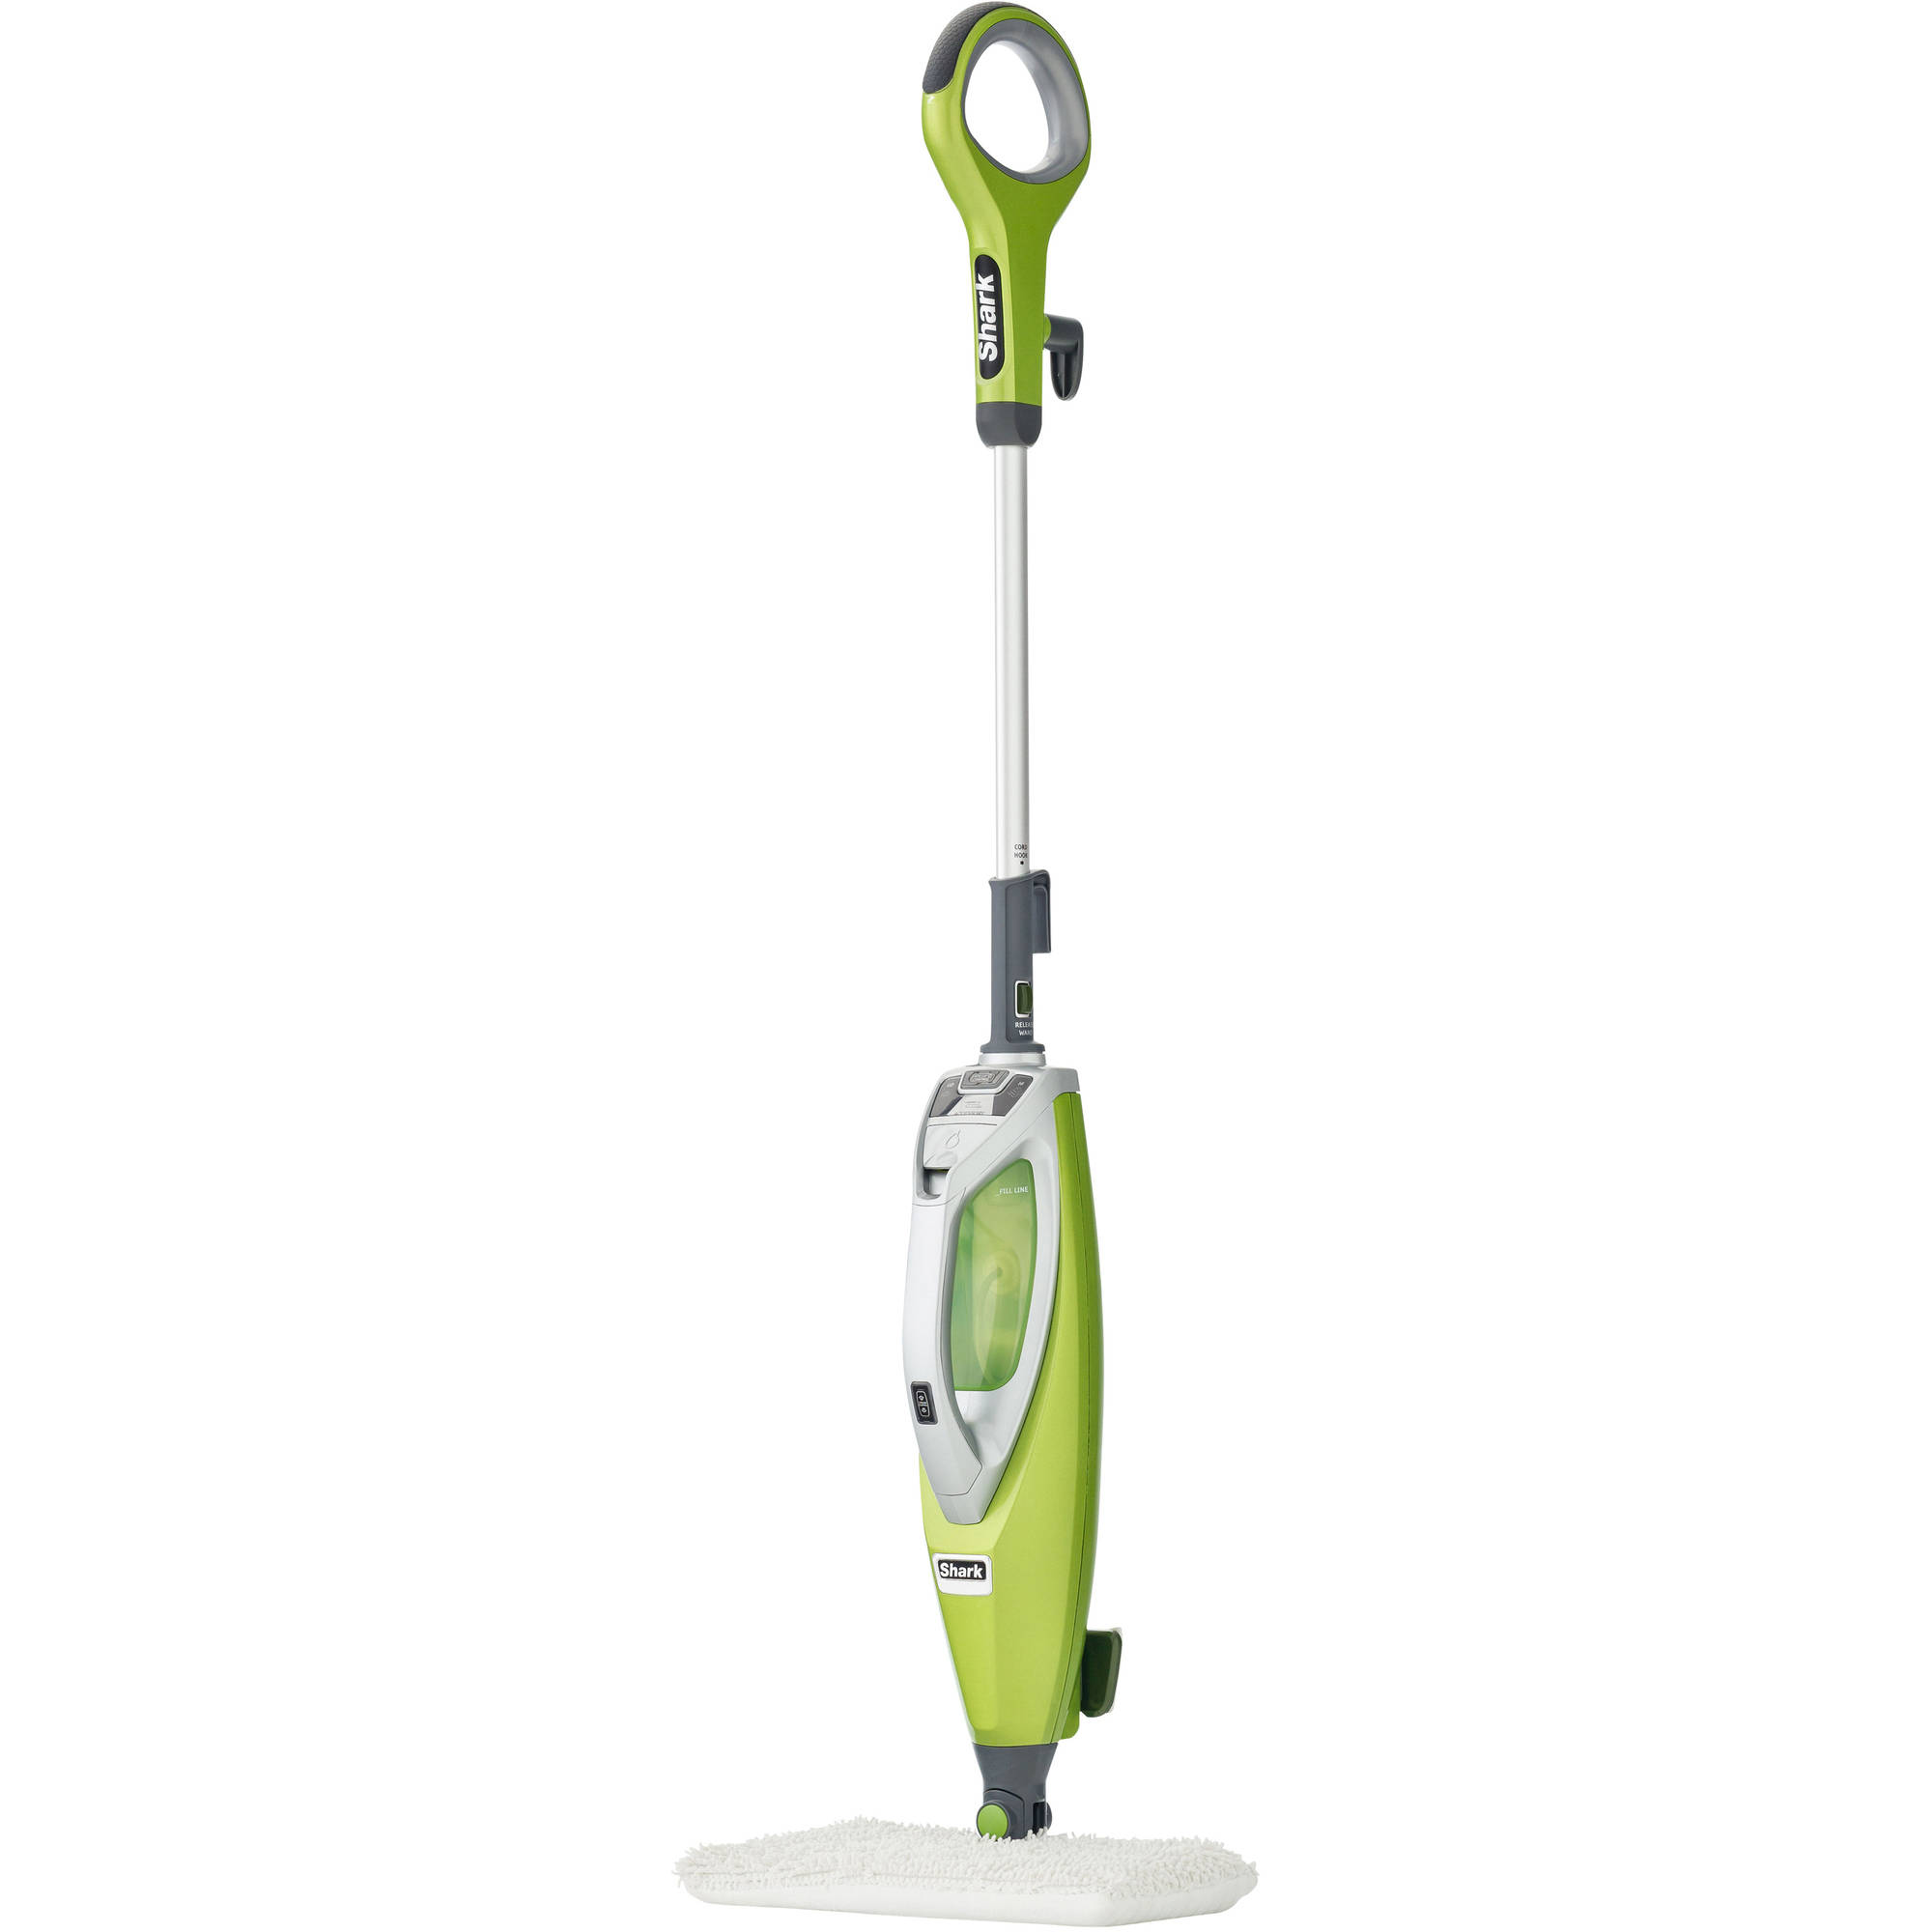 Shark Steam Blast 2 In 1 Pocket Mop S4701Wm Walmart